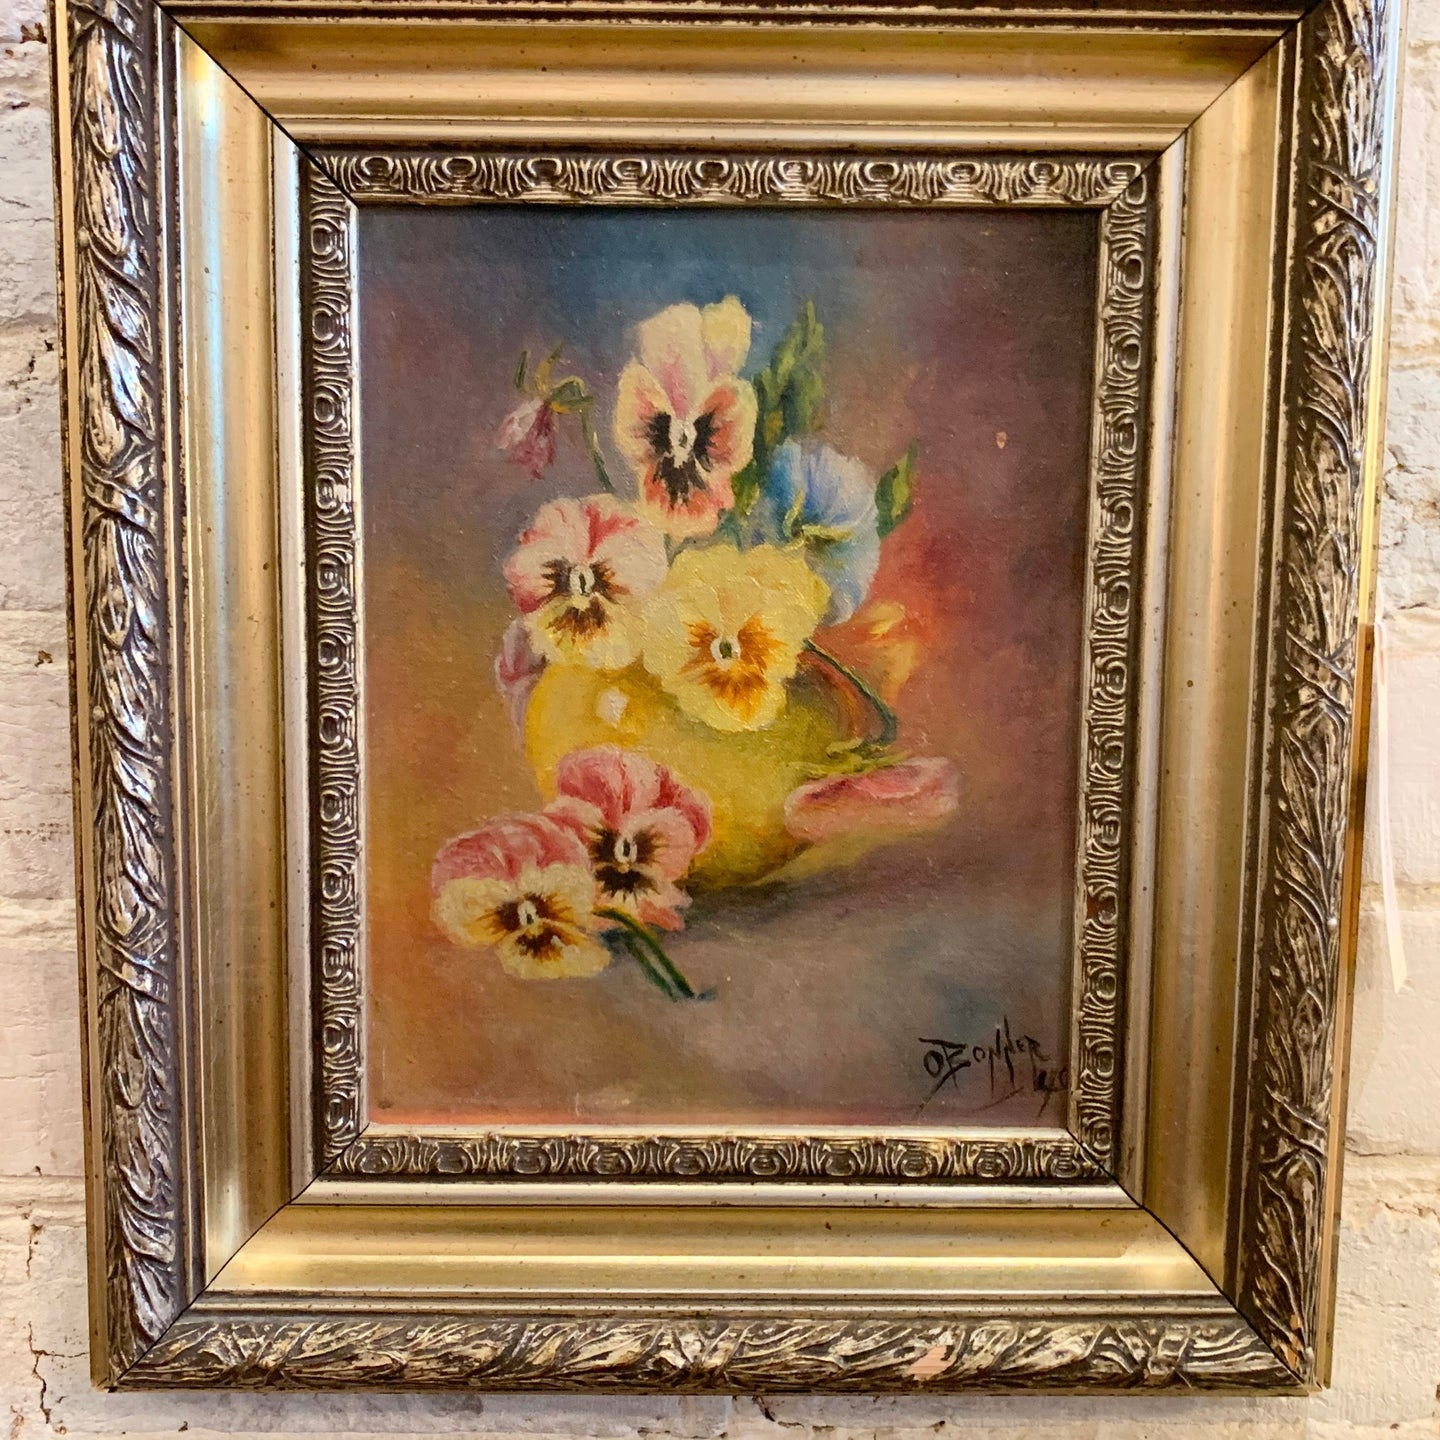 Antique Oil on Canvas Pansies by O. Bonner